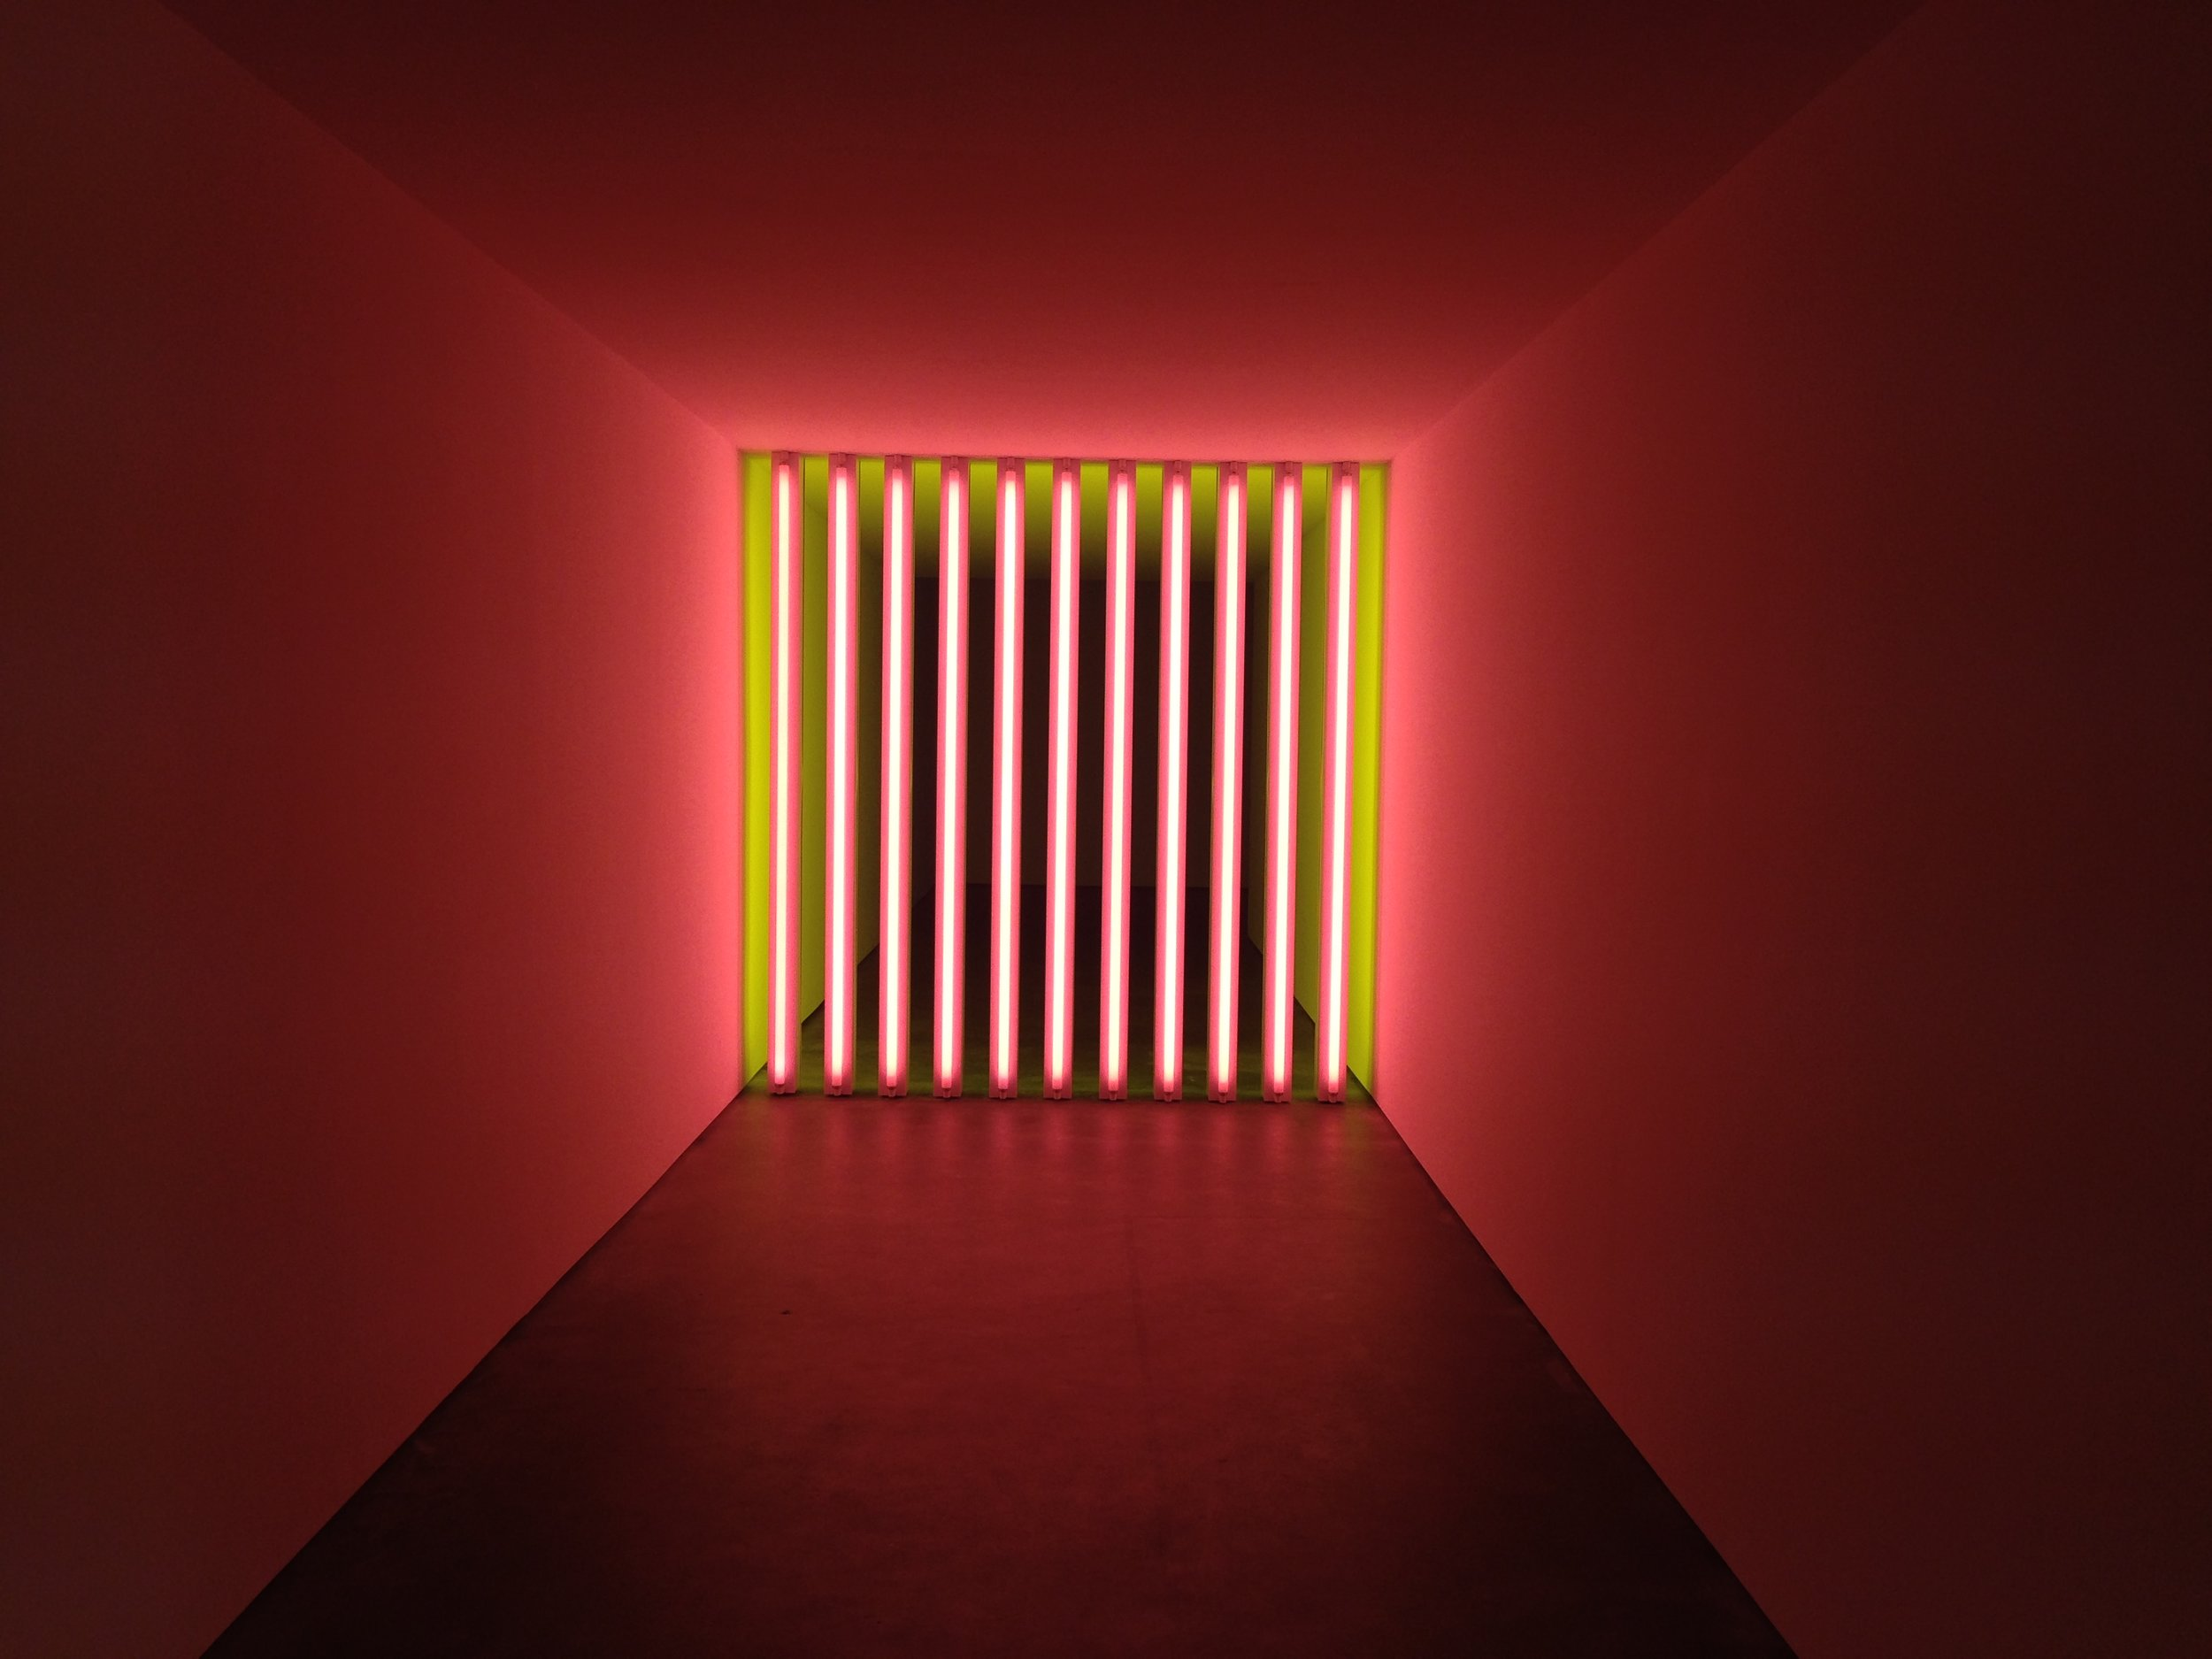 Dan Flavin, Untitled (to Barry, Mike, Chuck and Leonard), 1972-‐1975